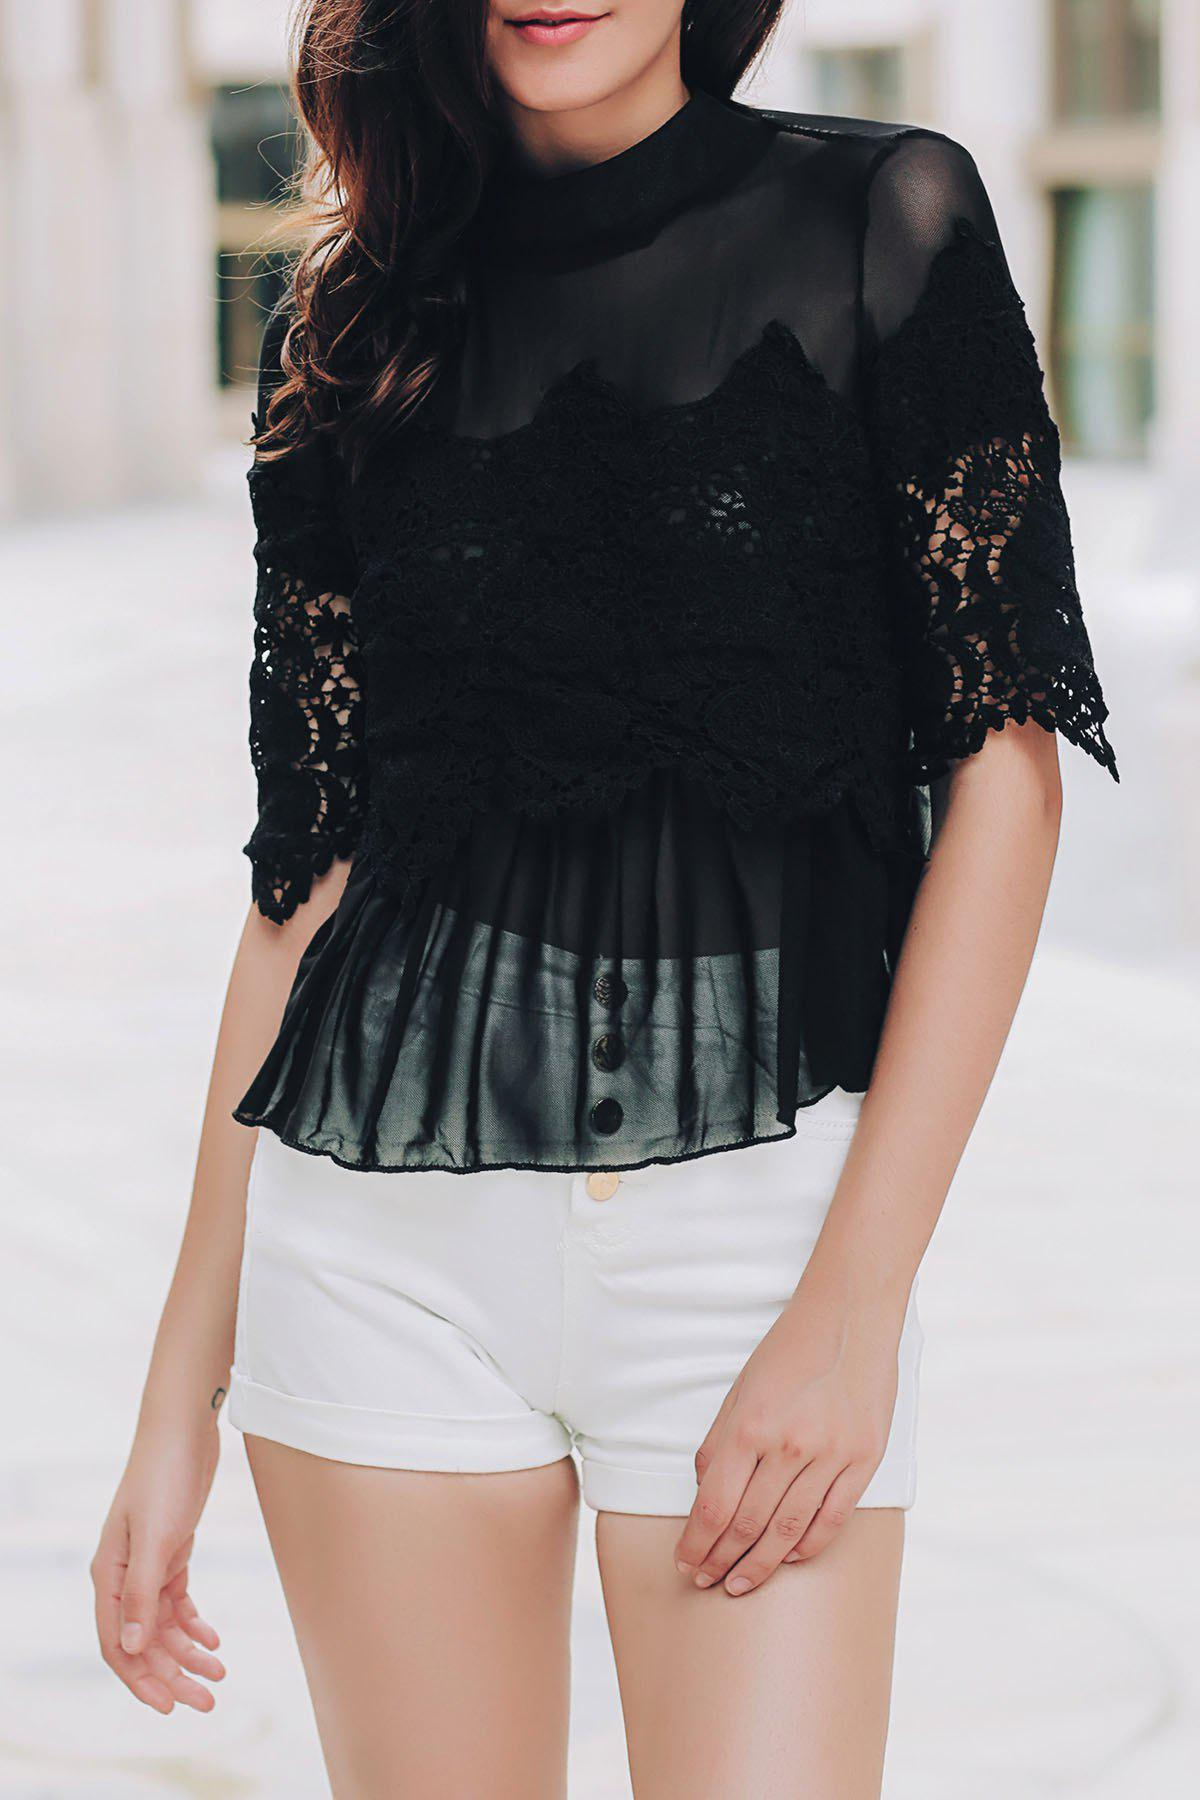 Sexy Stand Collar 3/4 Sleeve Cut Out See-Through Women's Blouse - M BLACK